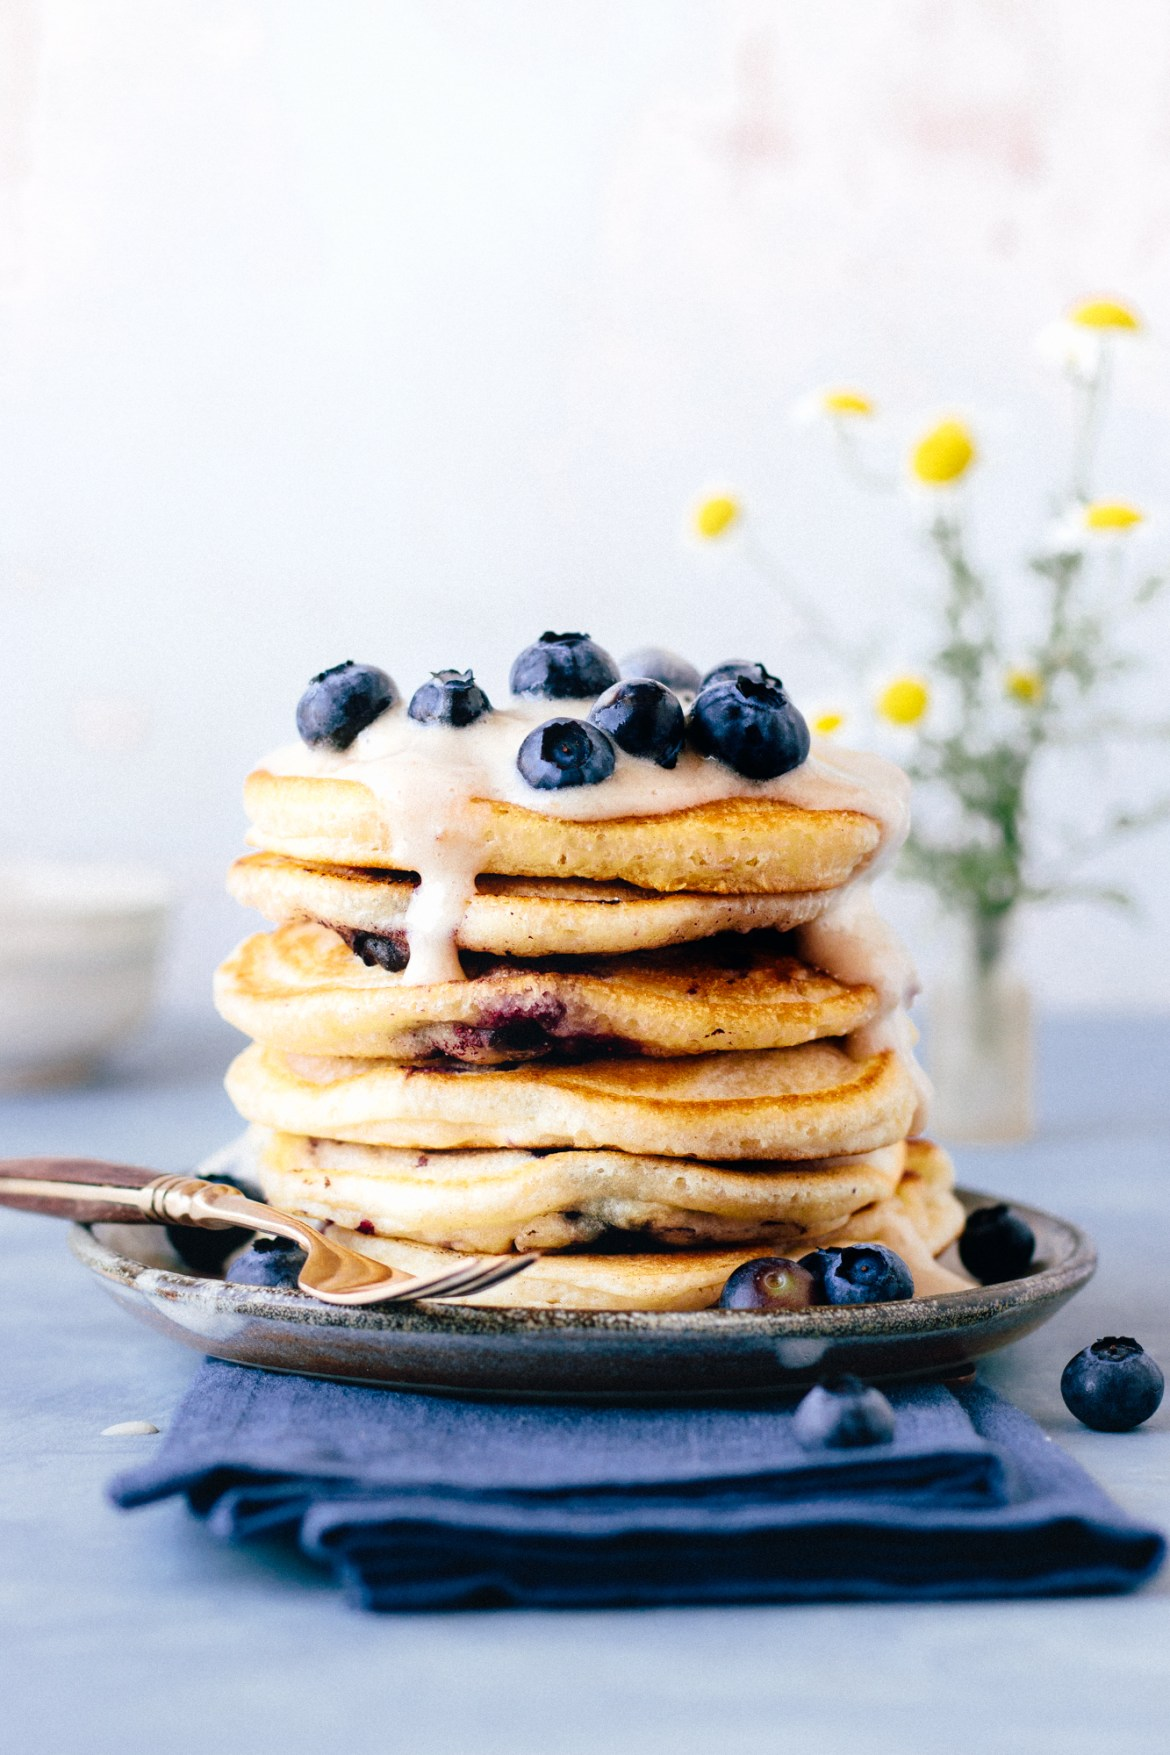 Vegan Fluffy Blueberry Pancakes With Banana Ice Cream